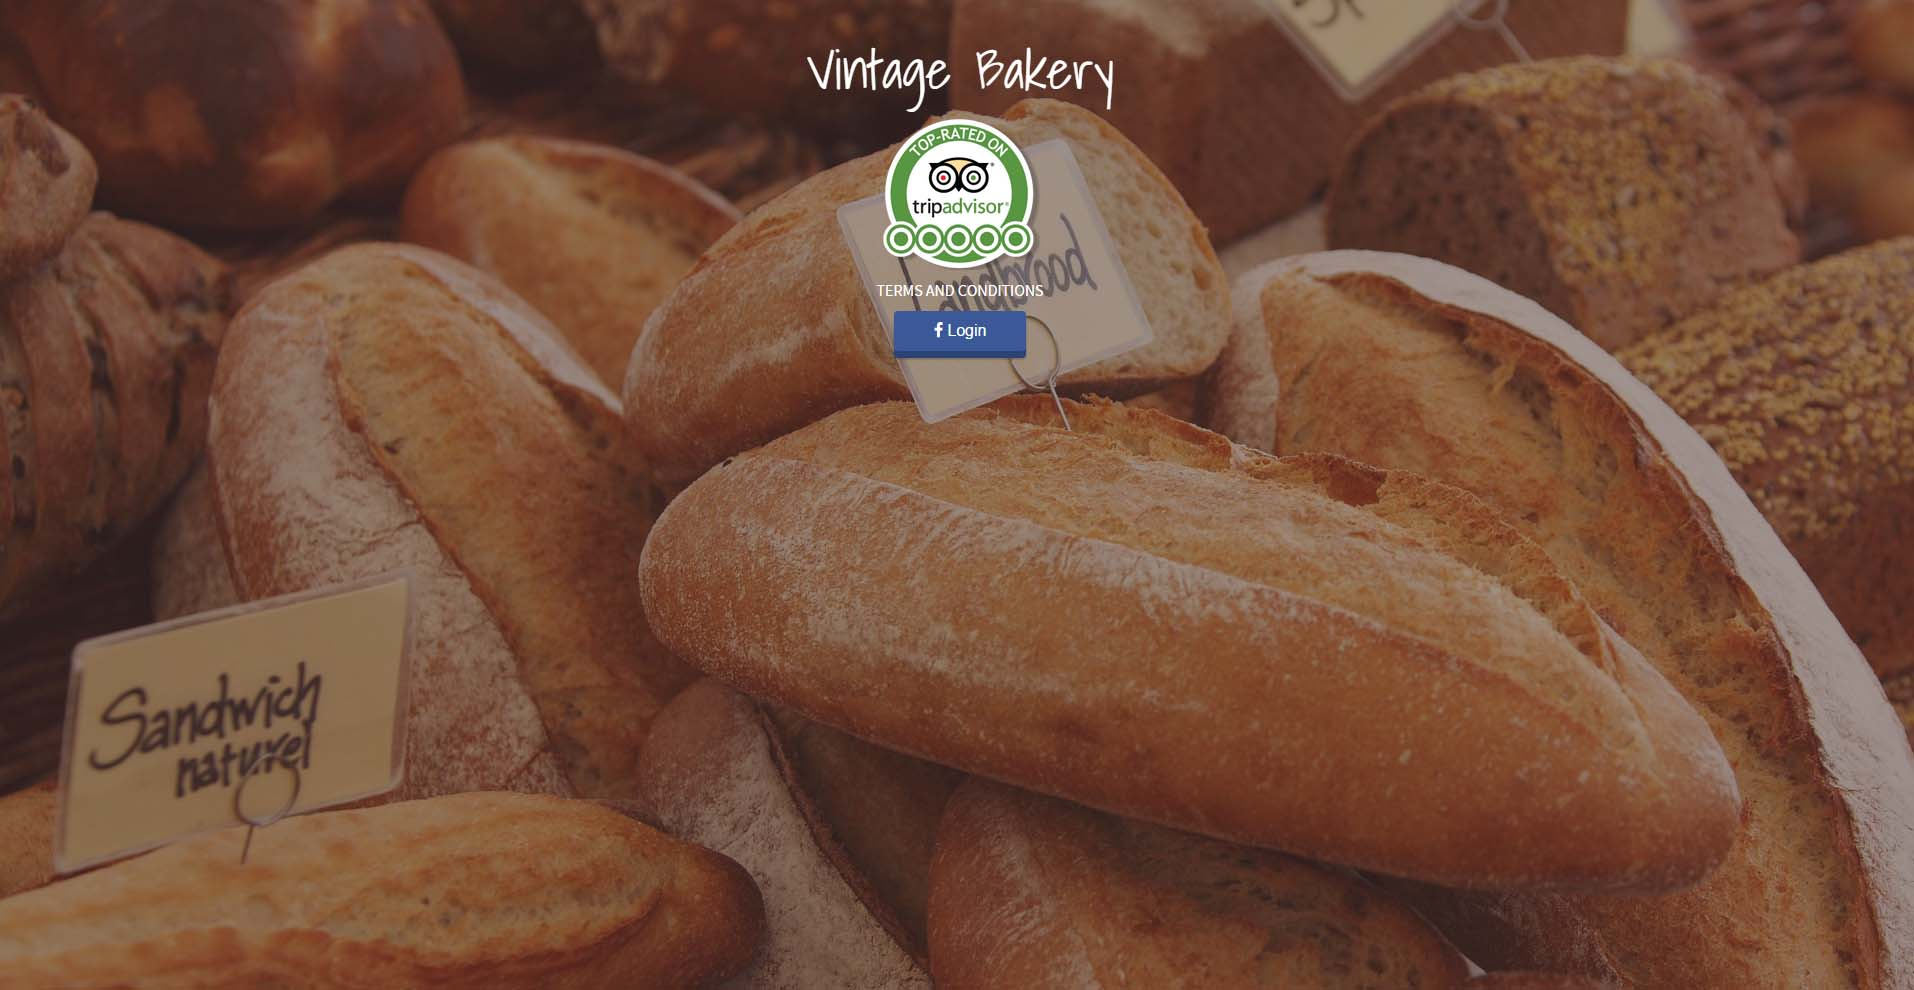 WiFi for Vintage Bakery